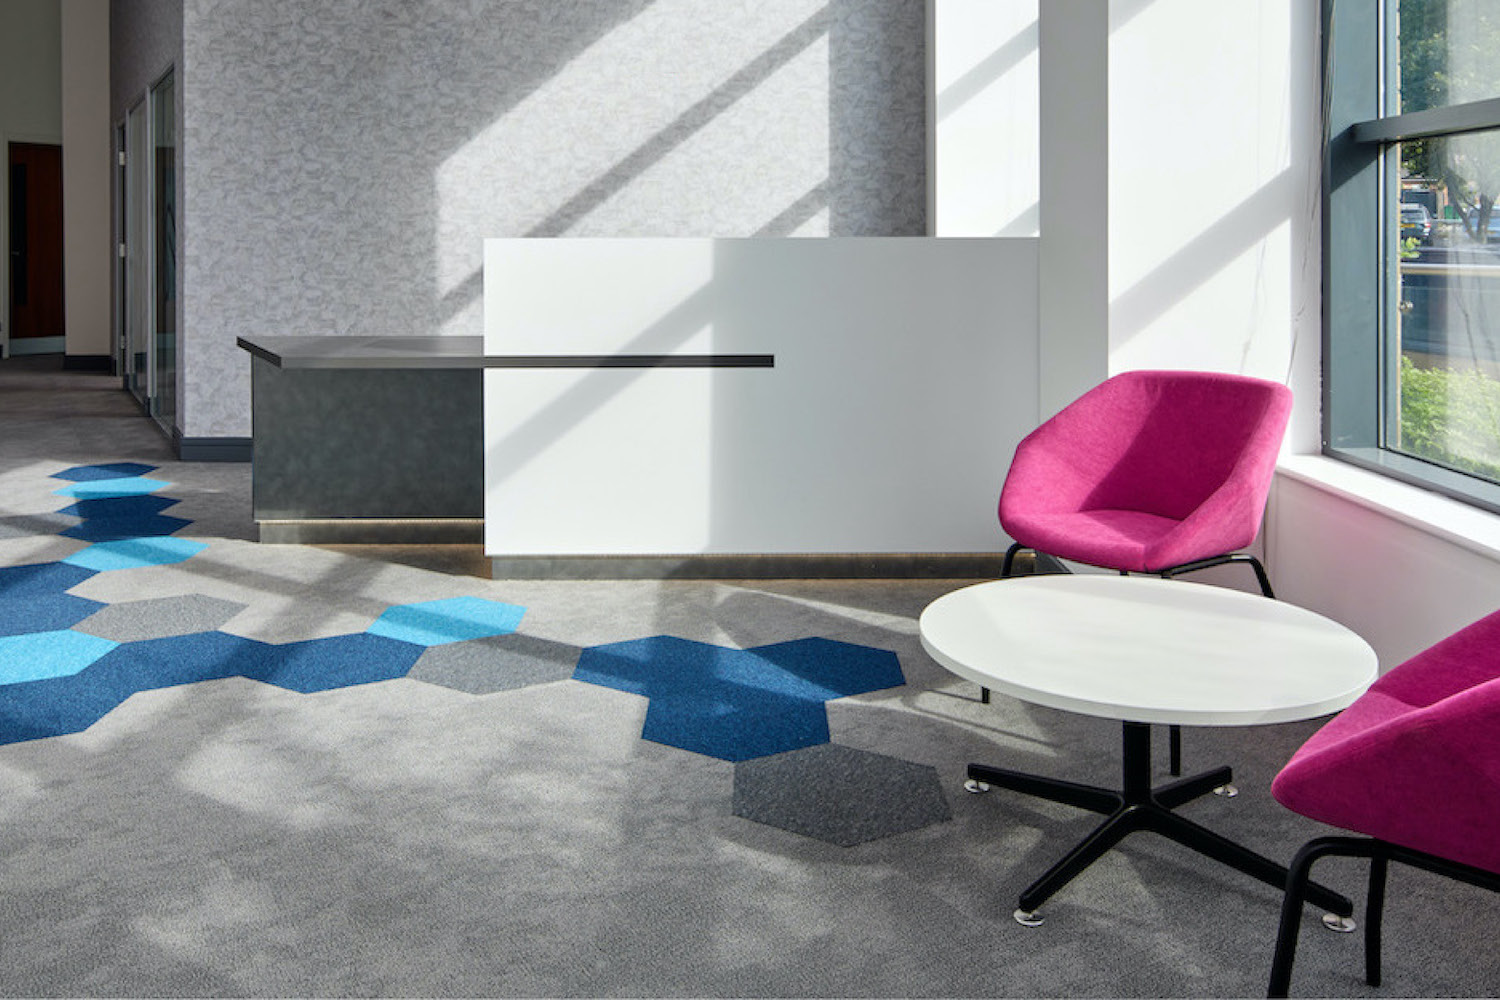 Attractive reception are using Hexxtiles as a feature